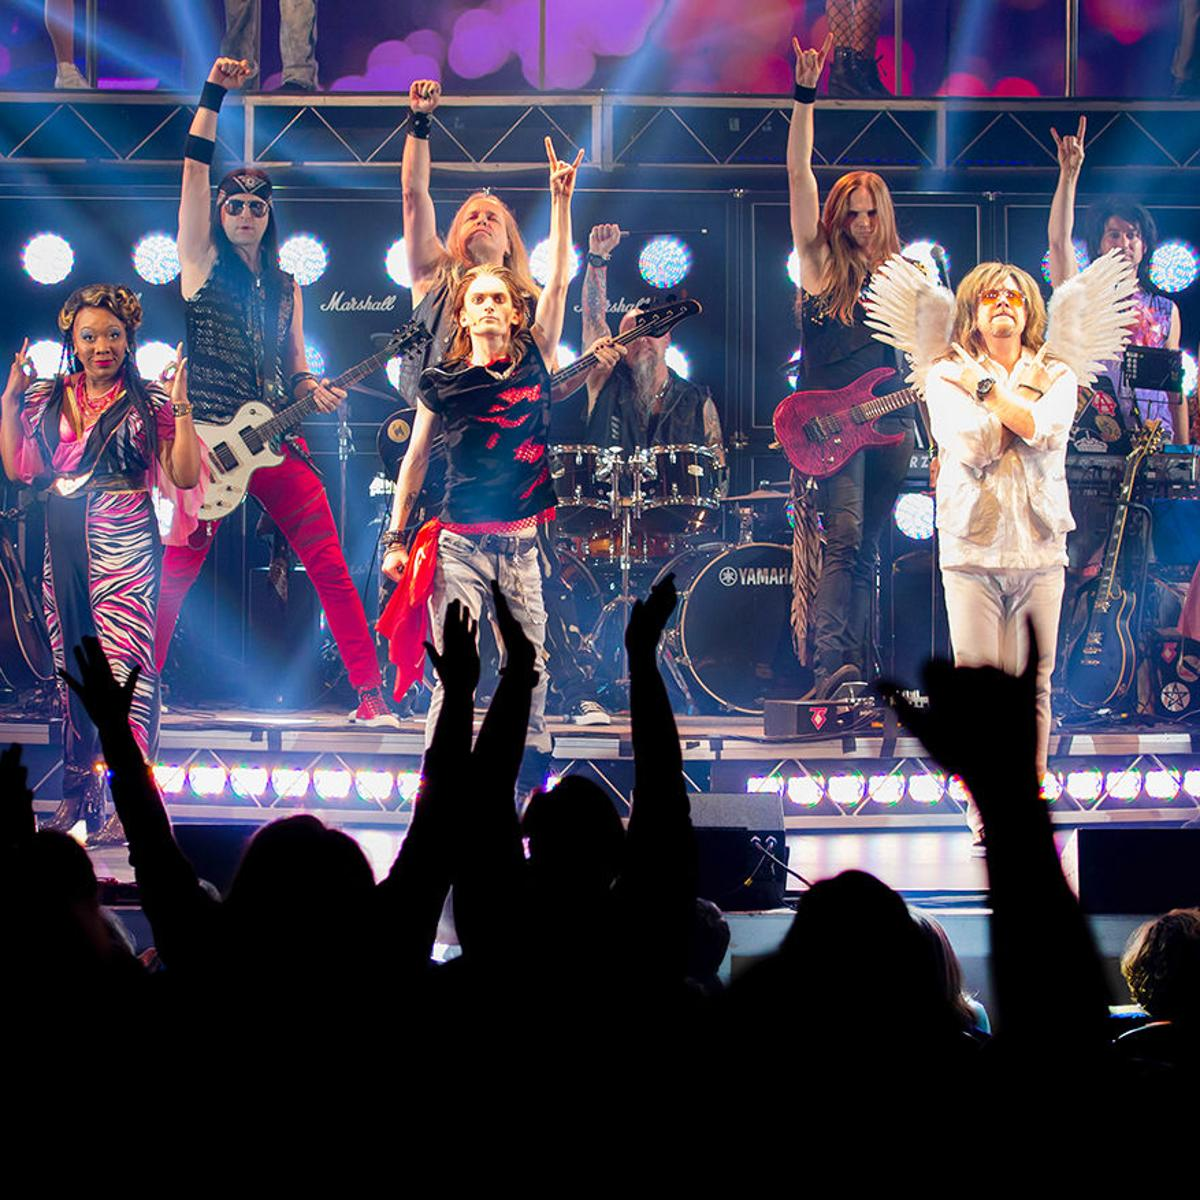 Rock of Ages' bringing '80s hits, style to Atlanta's Fox